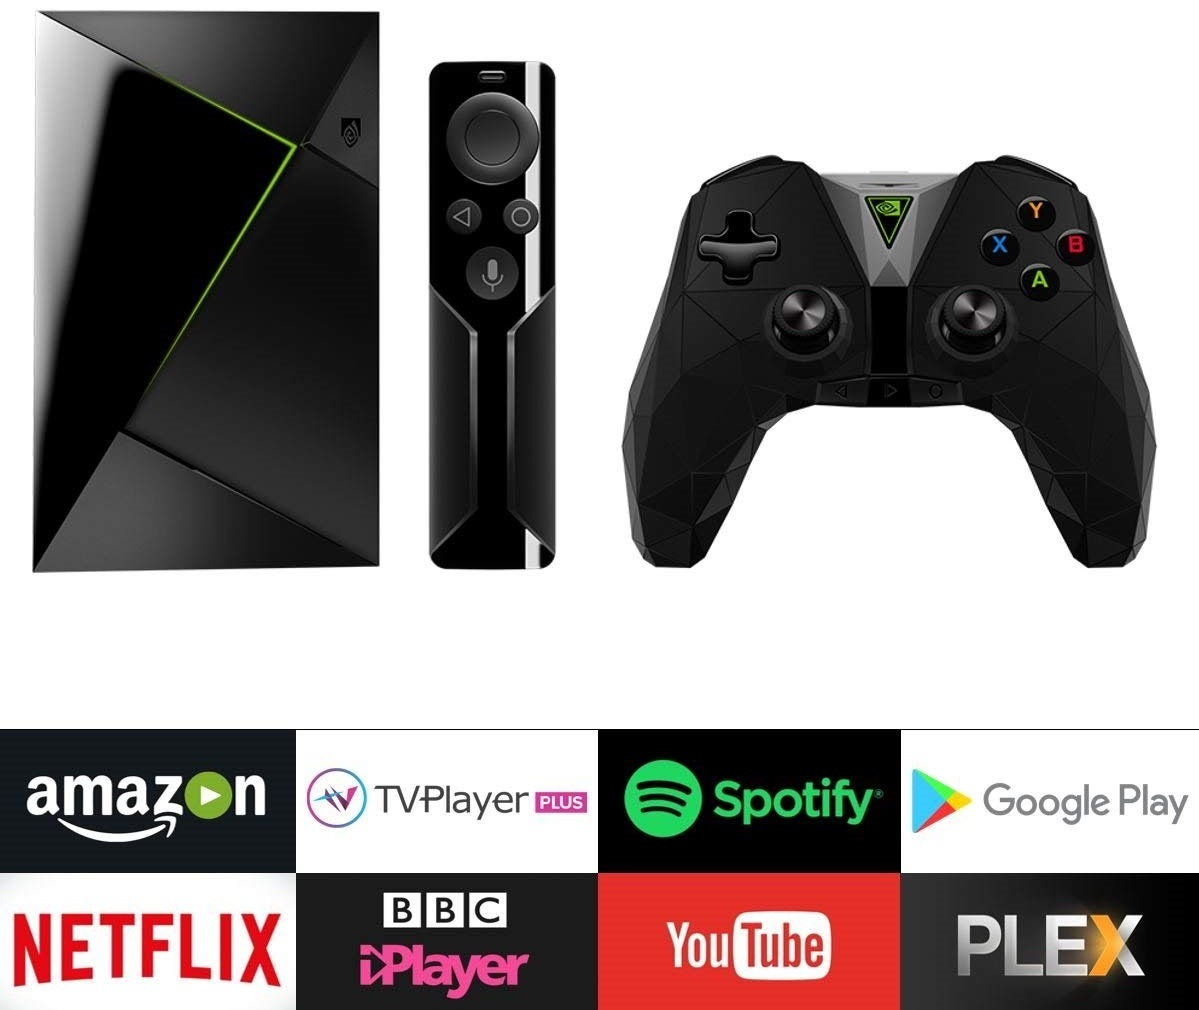 NVIDIA Shield with Remote and Controller image